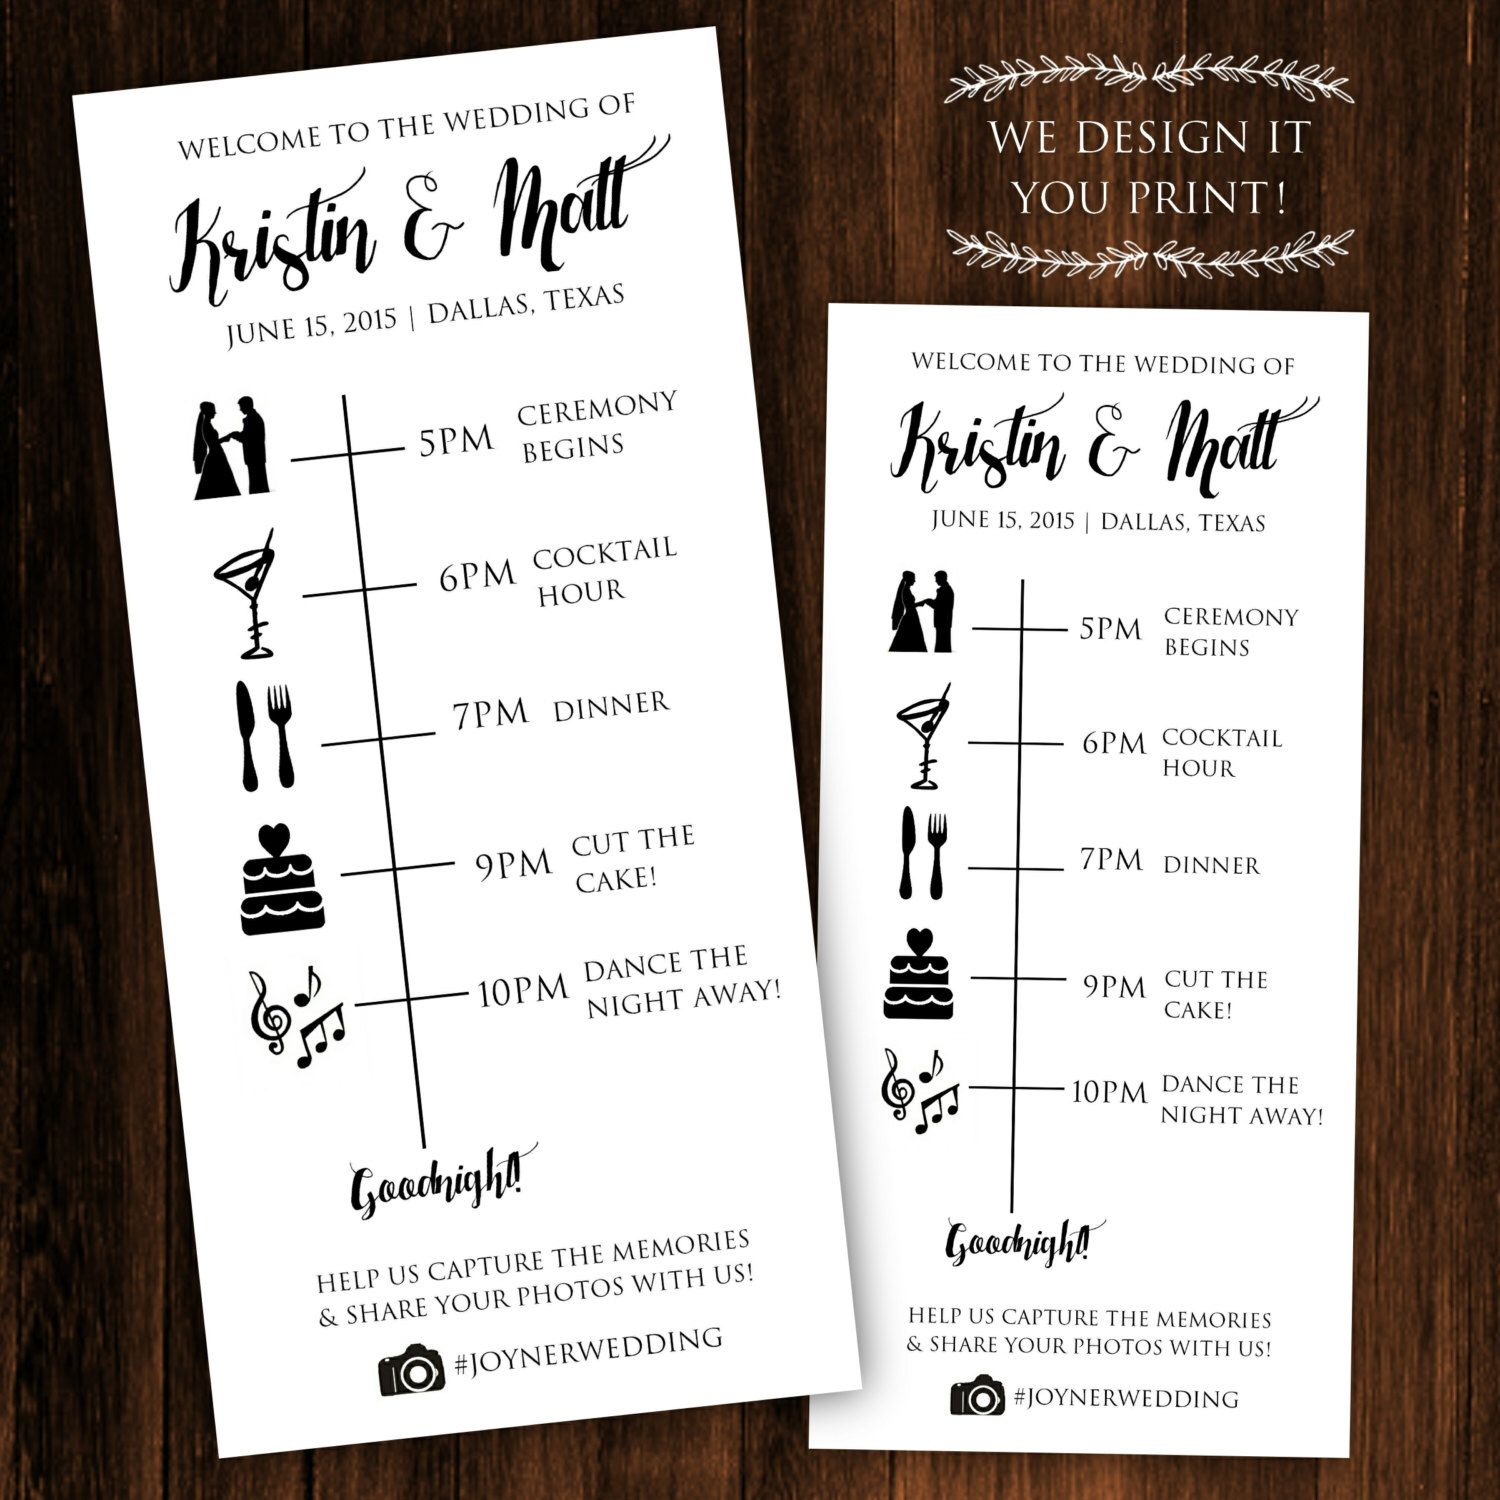 Printable Wedding Timeline Printable Wedding Itinerary Wedding Itinerary Template Wedding Pr Wedding Timeline Wedding Itinerary Wedding Timeline Template